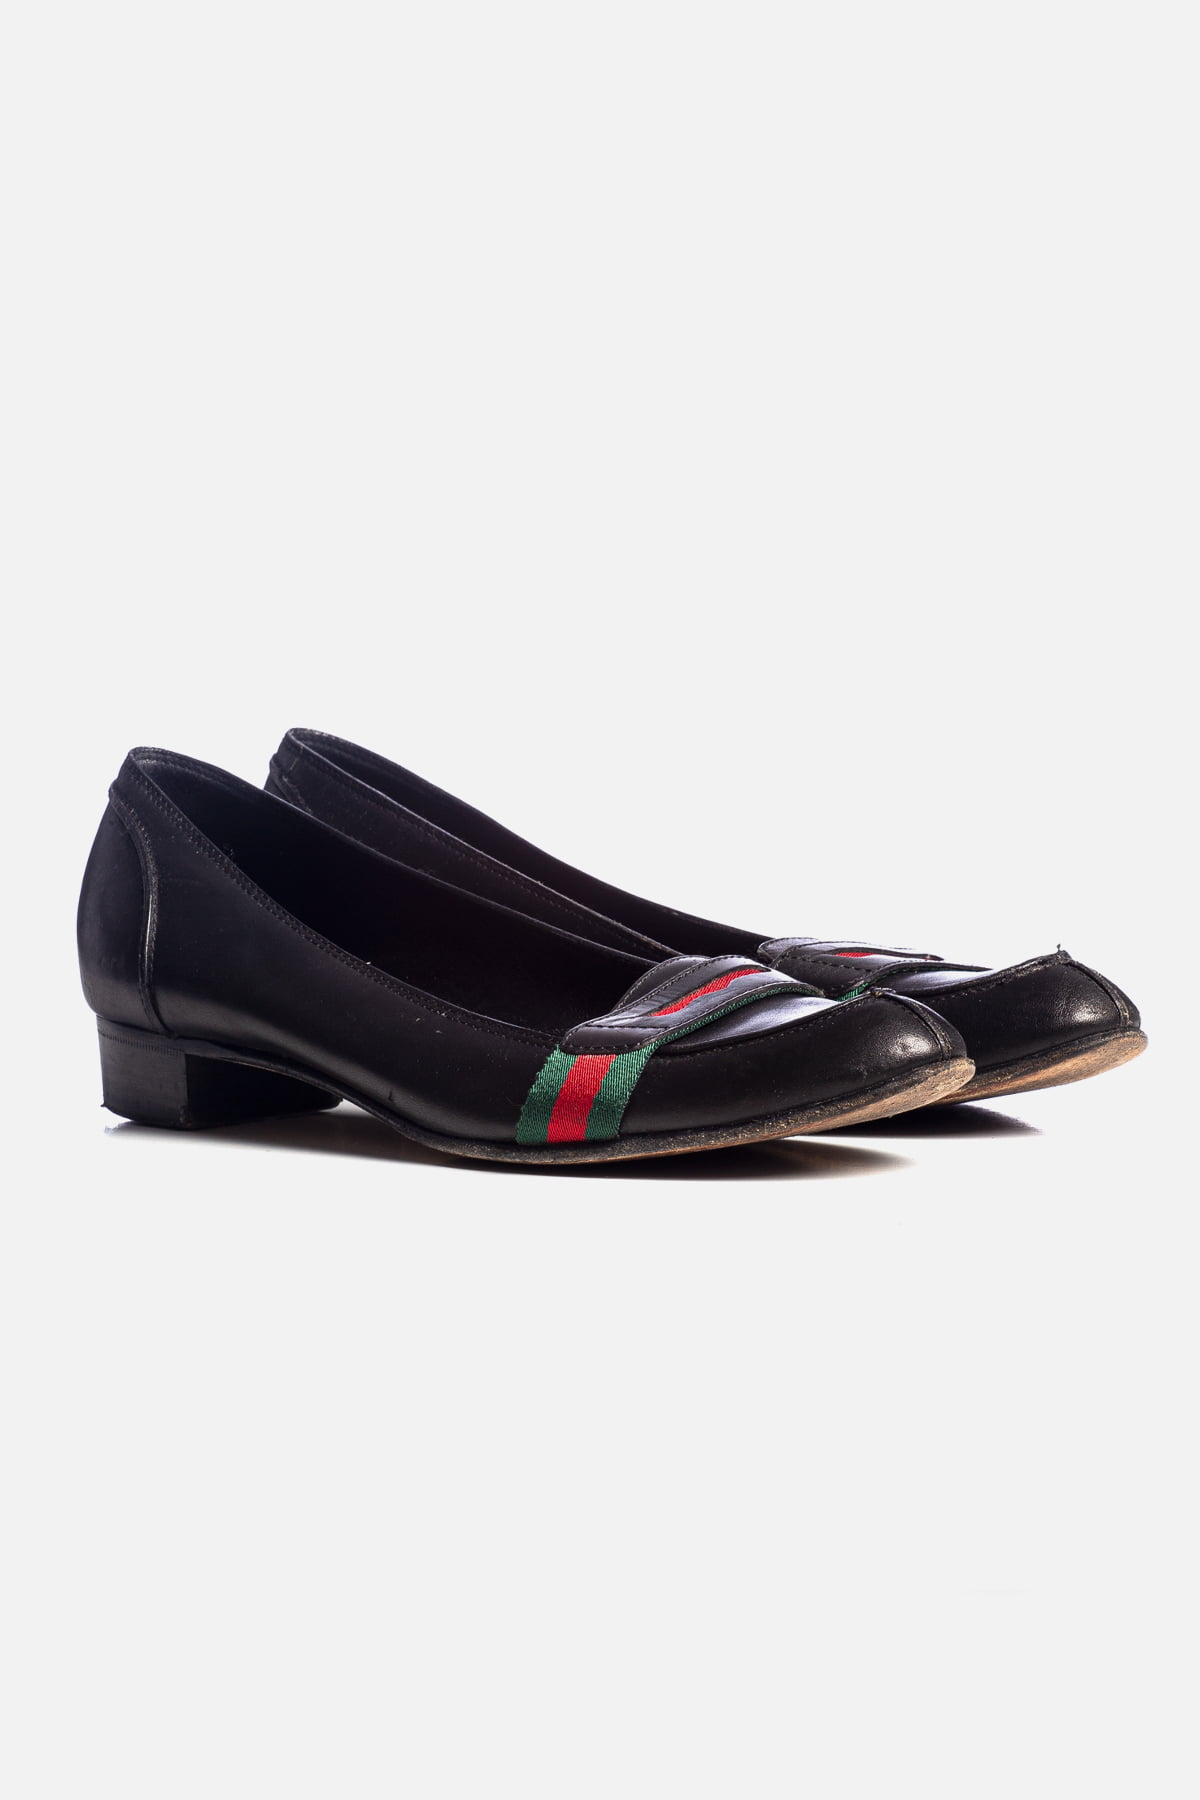 GG Canvas Leather Flats